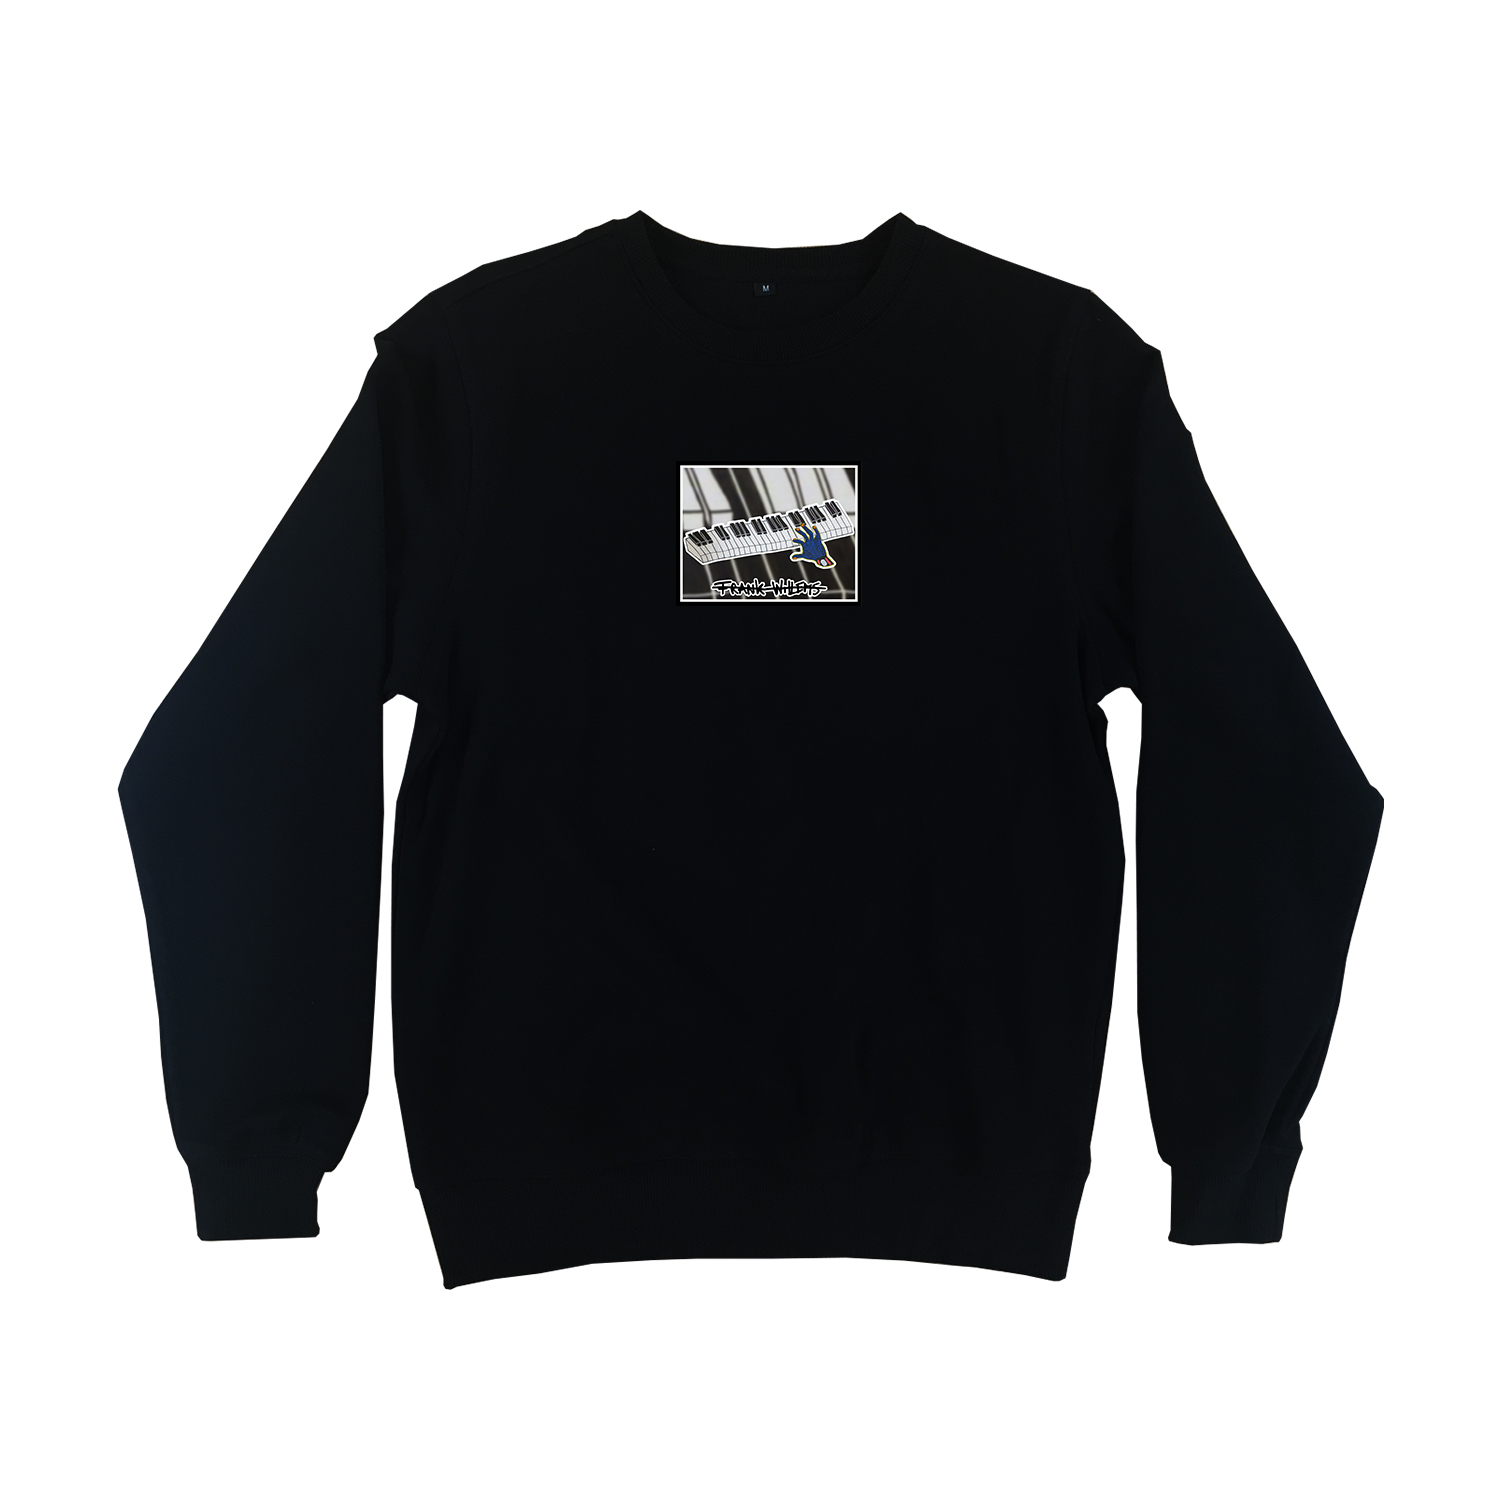 Sweater black - ONE PRESS CLOSER TO MUSIC - Frank Willems